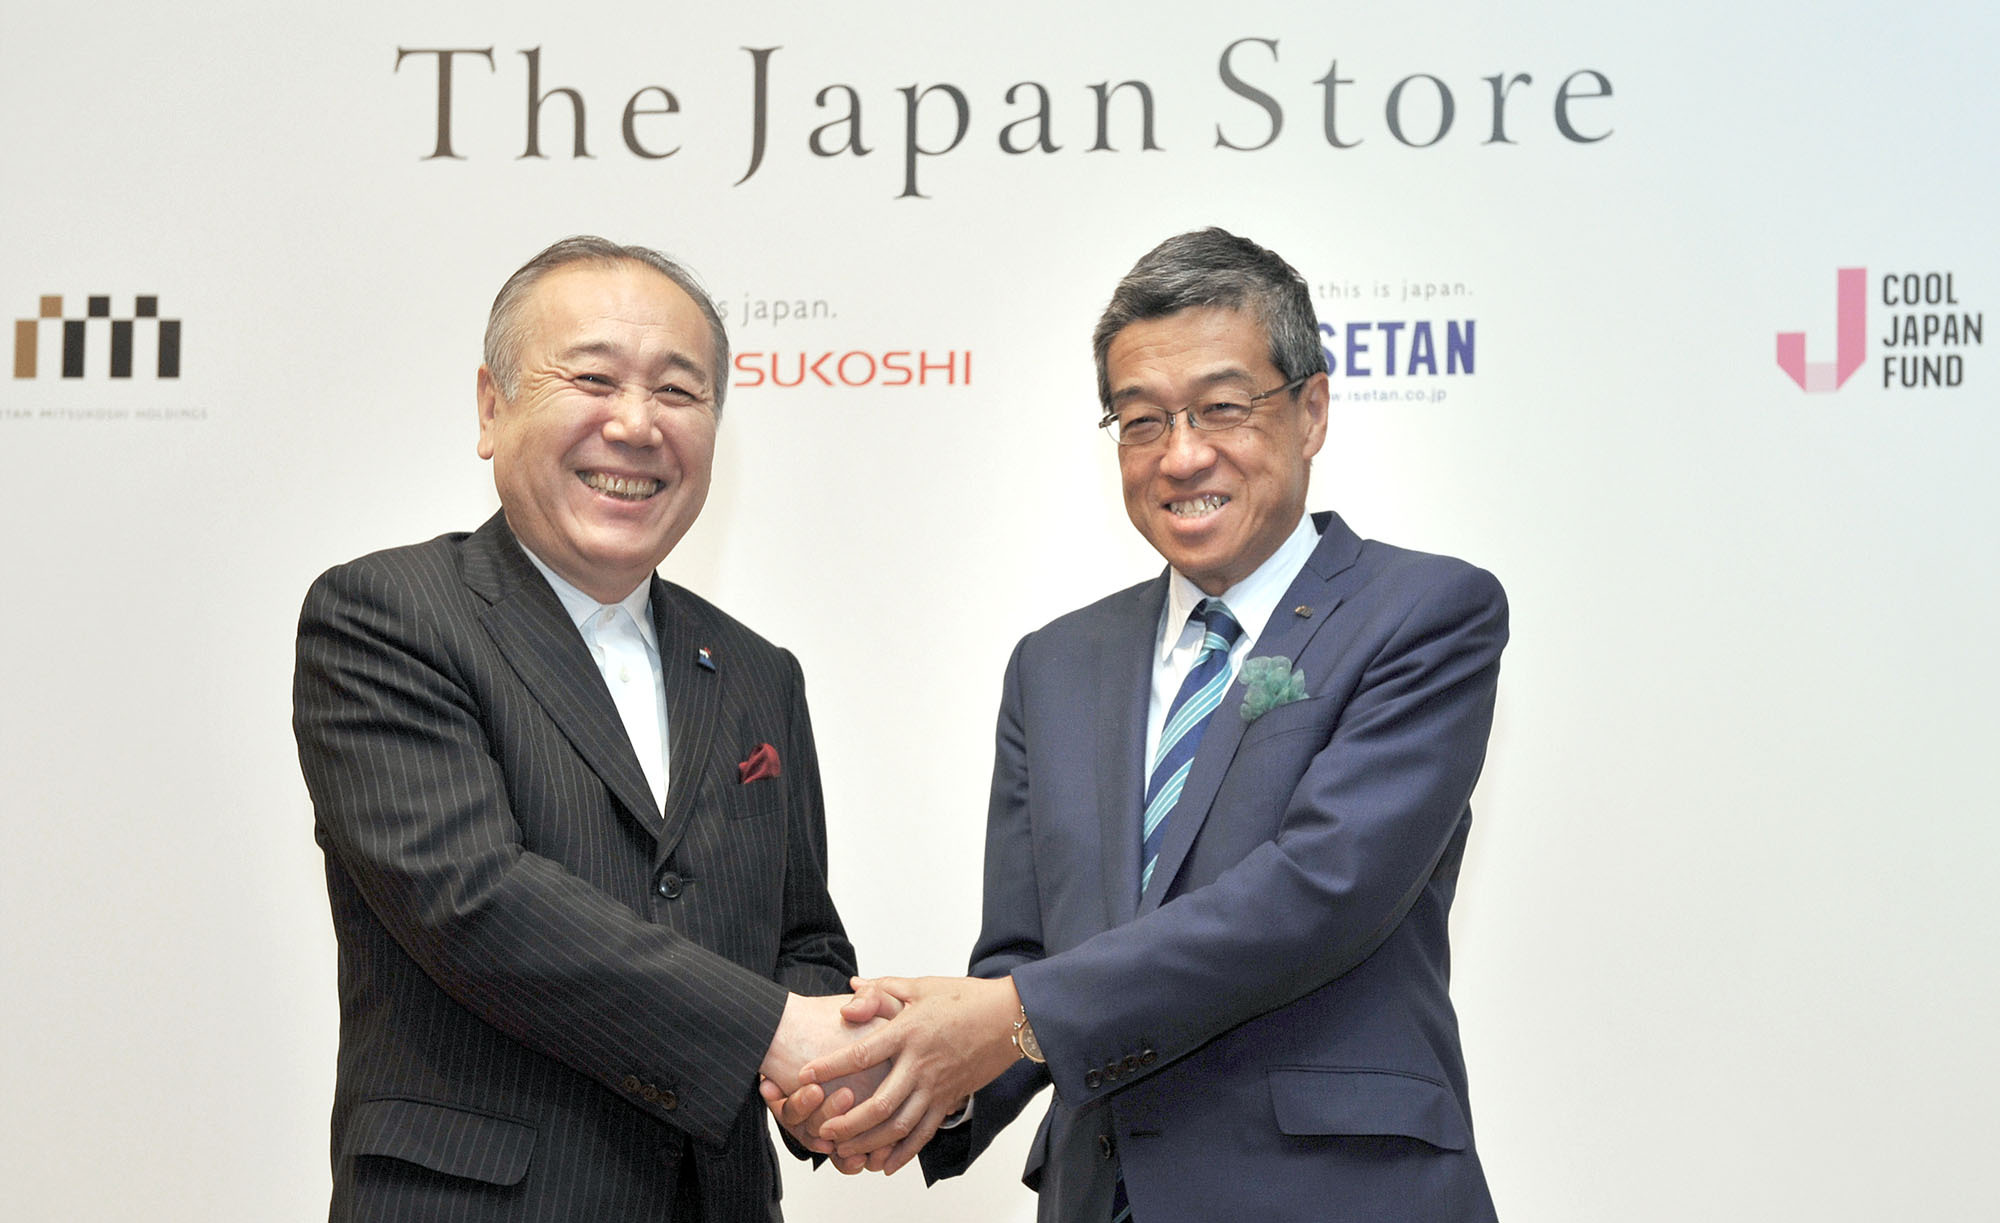 "Isetan Mitsukoshi Holdings Ltd. President and CEO Hiroshi Ohnishi (right), shakes hands with Cool Japan Fund CEO Nobuyuki Ota during a press conference for a Cool Japan Project, ""ISETAN The Japan Store Kuala Lumpur & The Japan Store ISETAN MITSUKOSHI Paris,"" at the Tsunamachi Mitsui Club in Tokyo on June 7. 